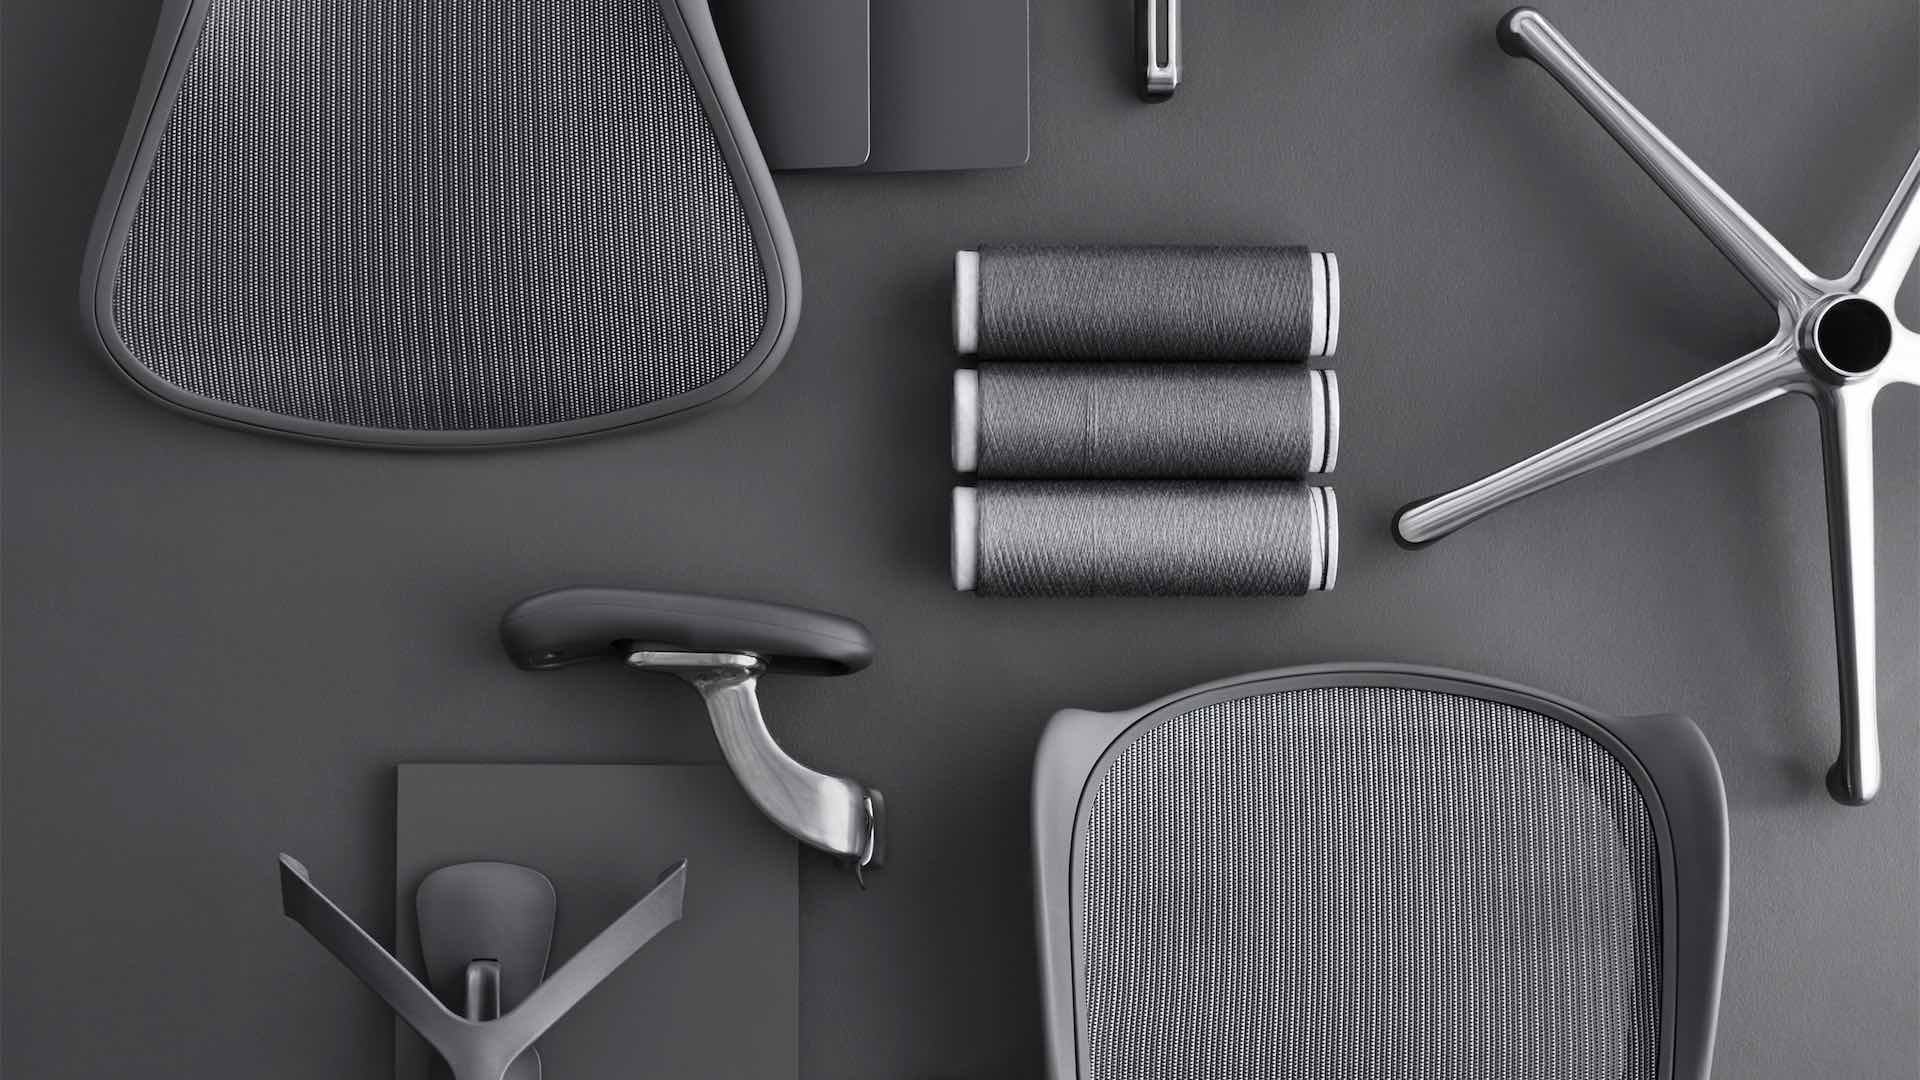 Individual parts of the ergonomic office chair Aeron.